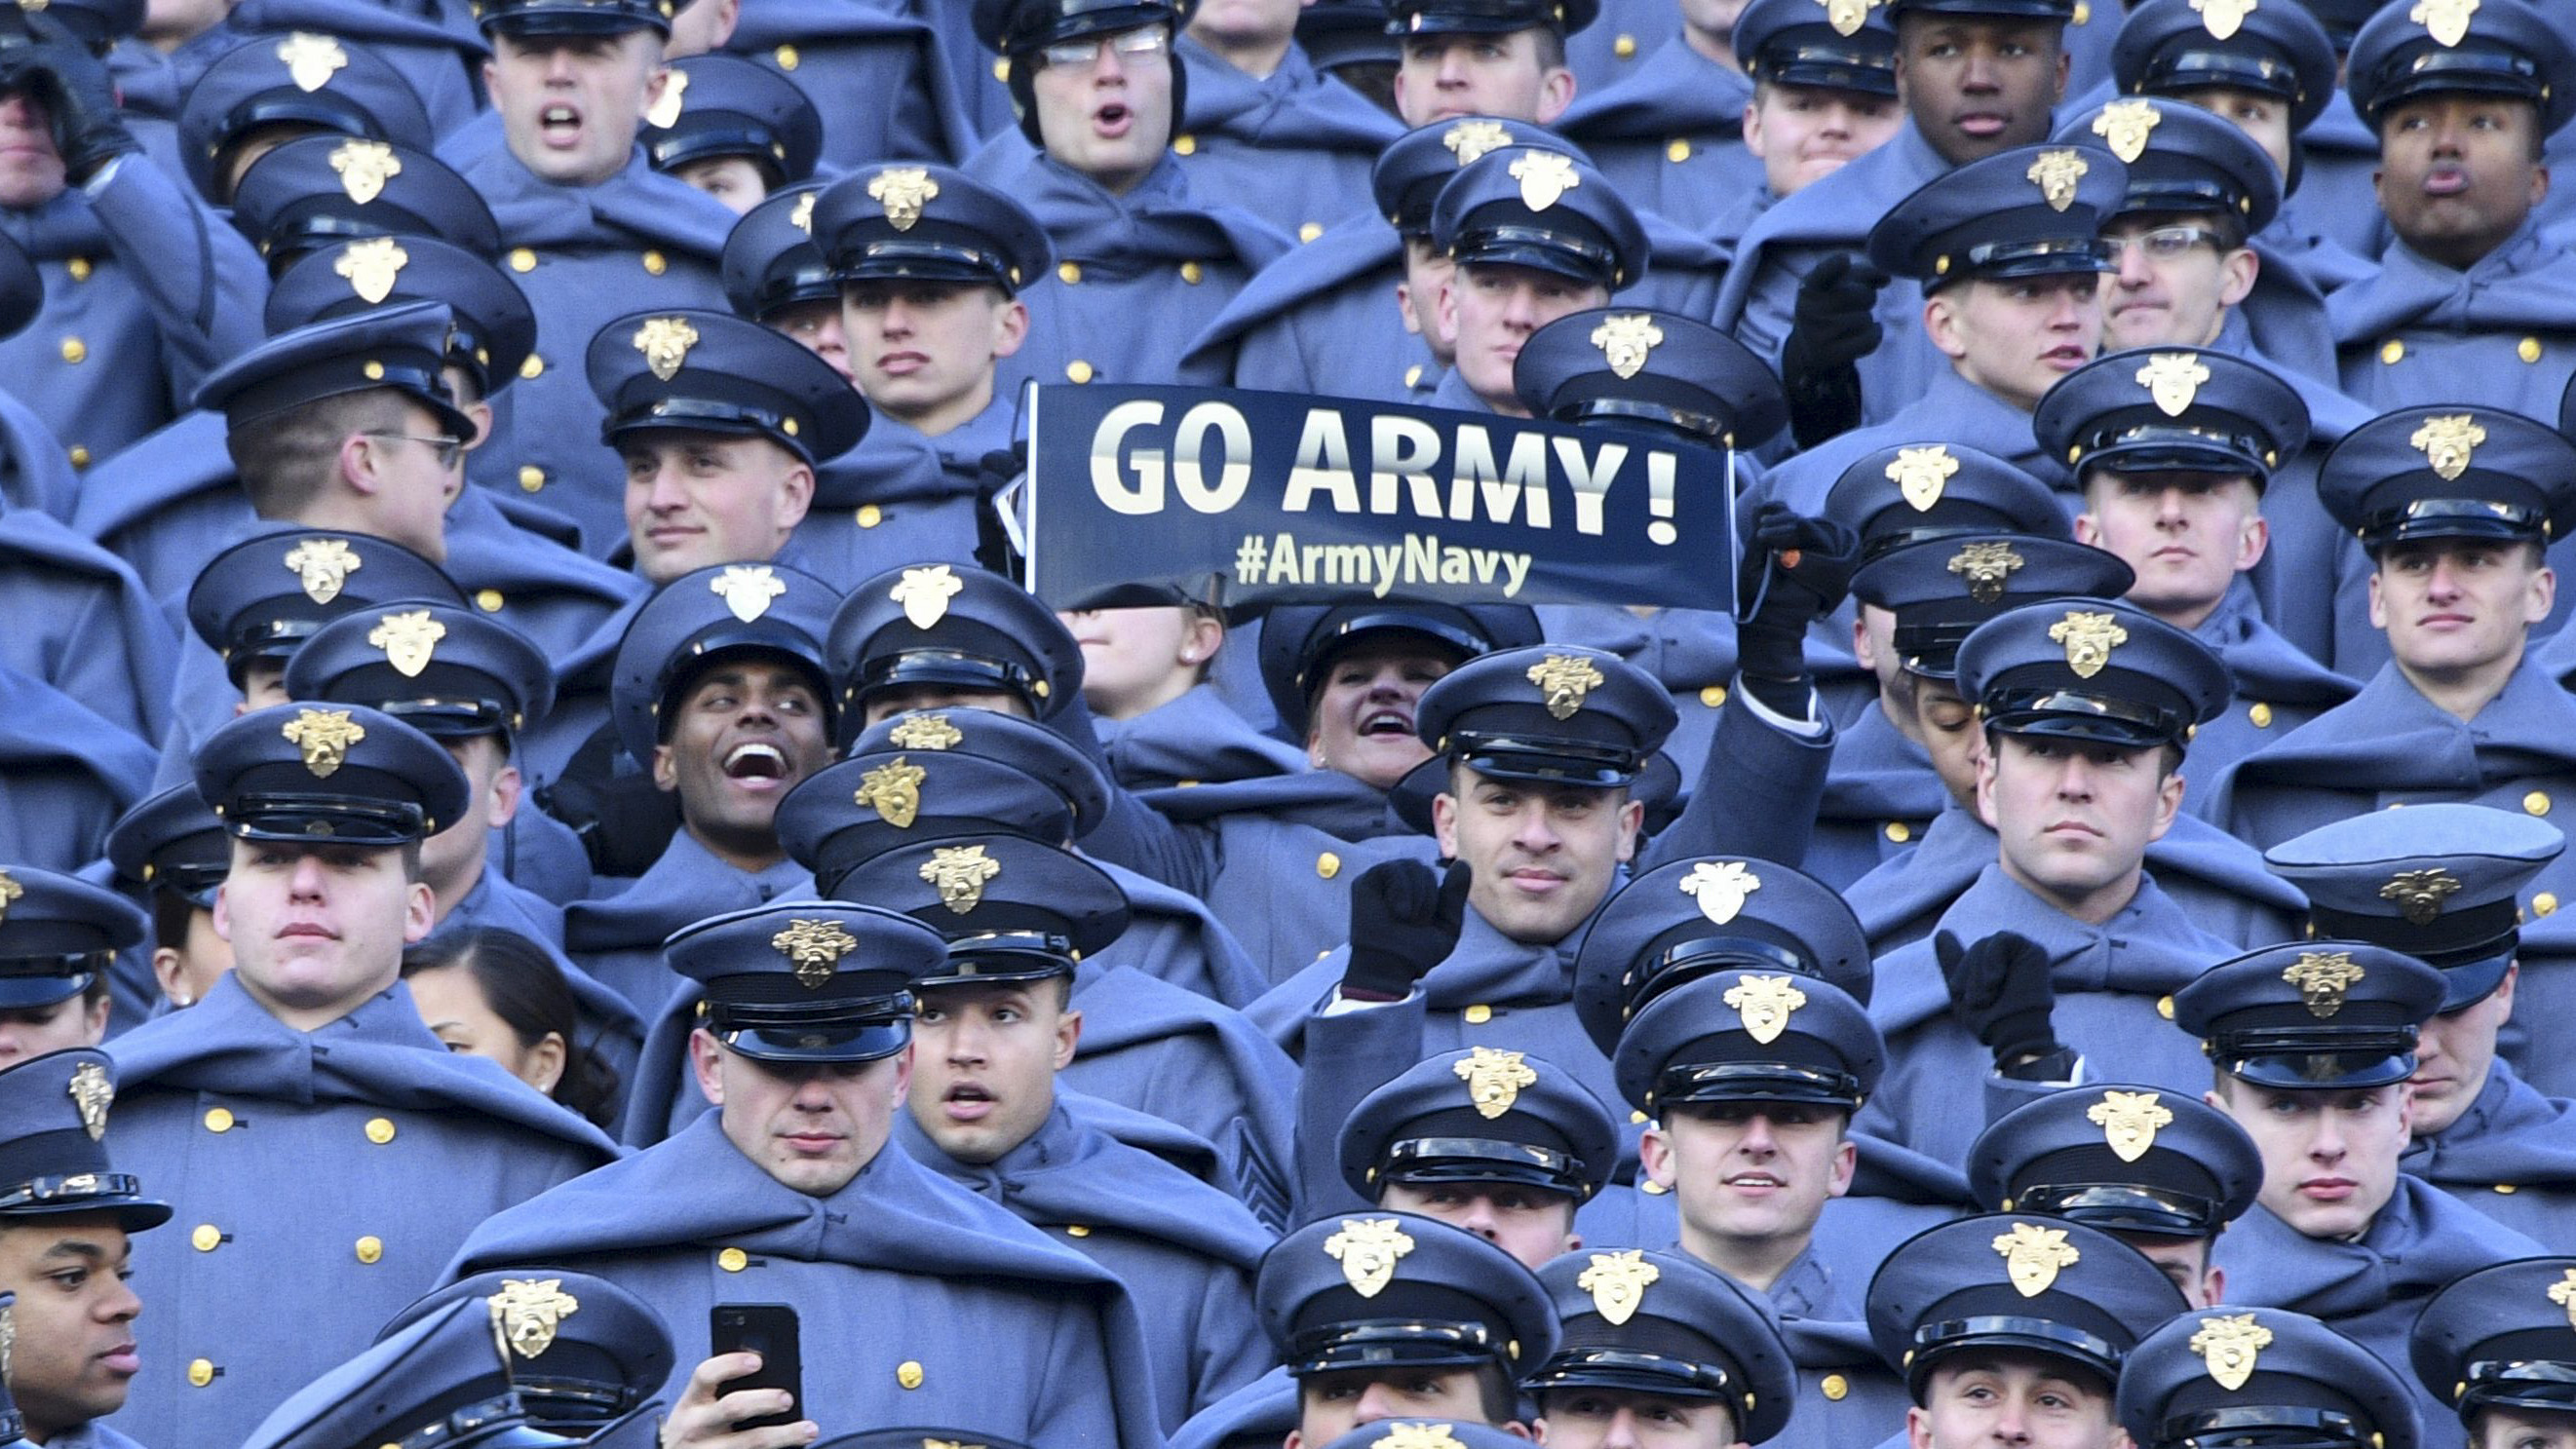 US Military Academy (USMA) show their support prior to the annual Army-Navy football game at Lincoln Financial Field in Philadelphia, Pennsylvania, December 8, 2018. - Trump will officiate the coin toss at Lincoln Financial Field in Philadelphia between the Army Black Knights of the US Military Academy (USMA) and the Navy Midshipmen of the US Naval Academy (USNA). (Photo by Jim WATSON / AFP) (Photo credit should read JIM WATSON/AFP/Getty Images)